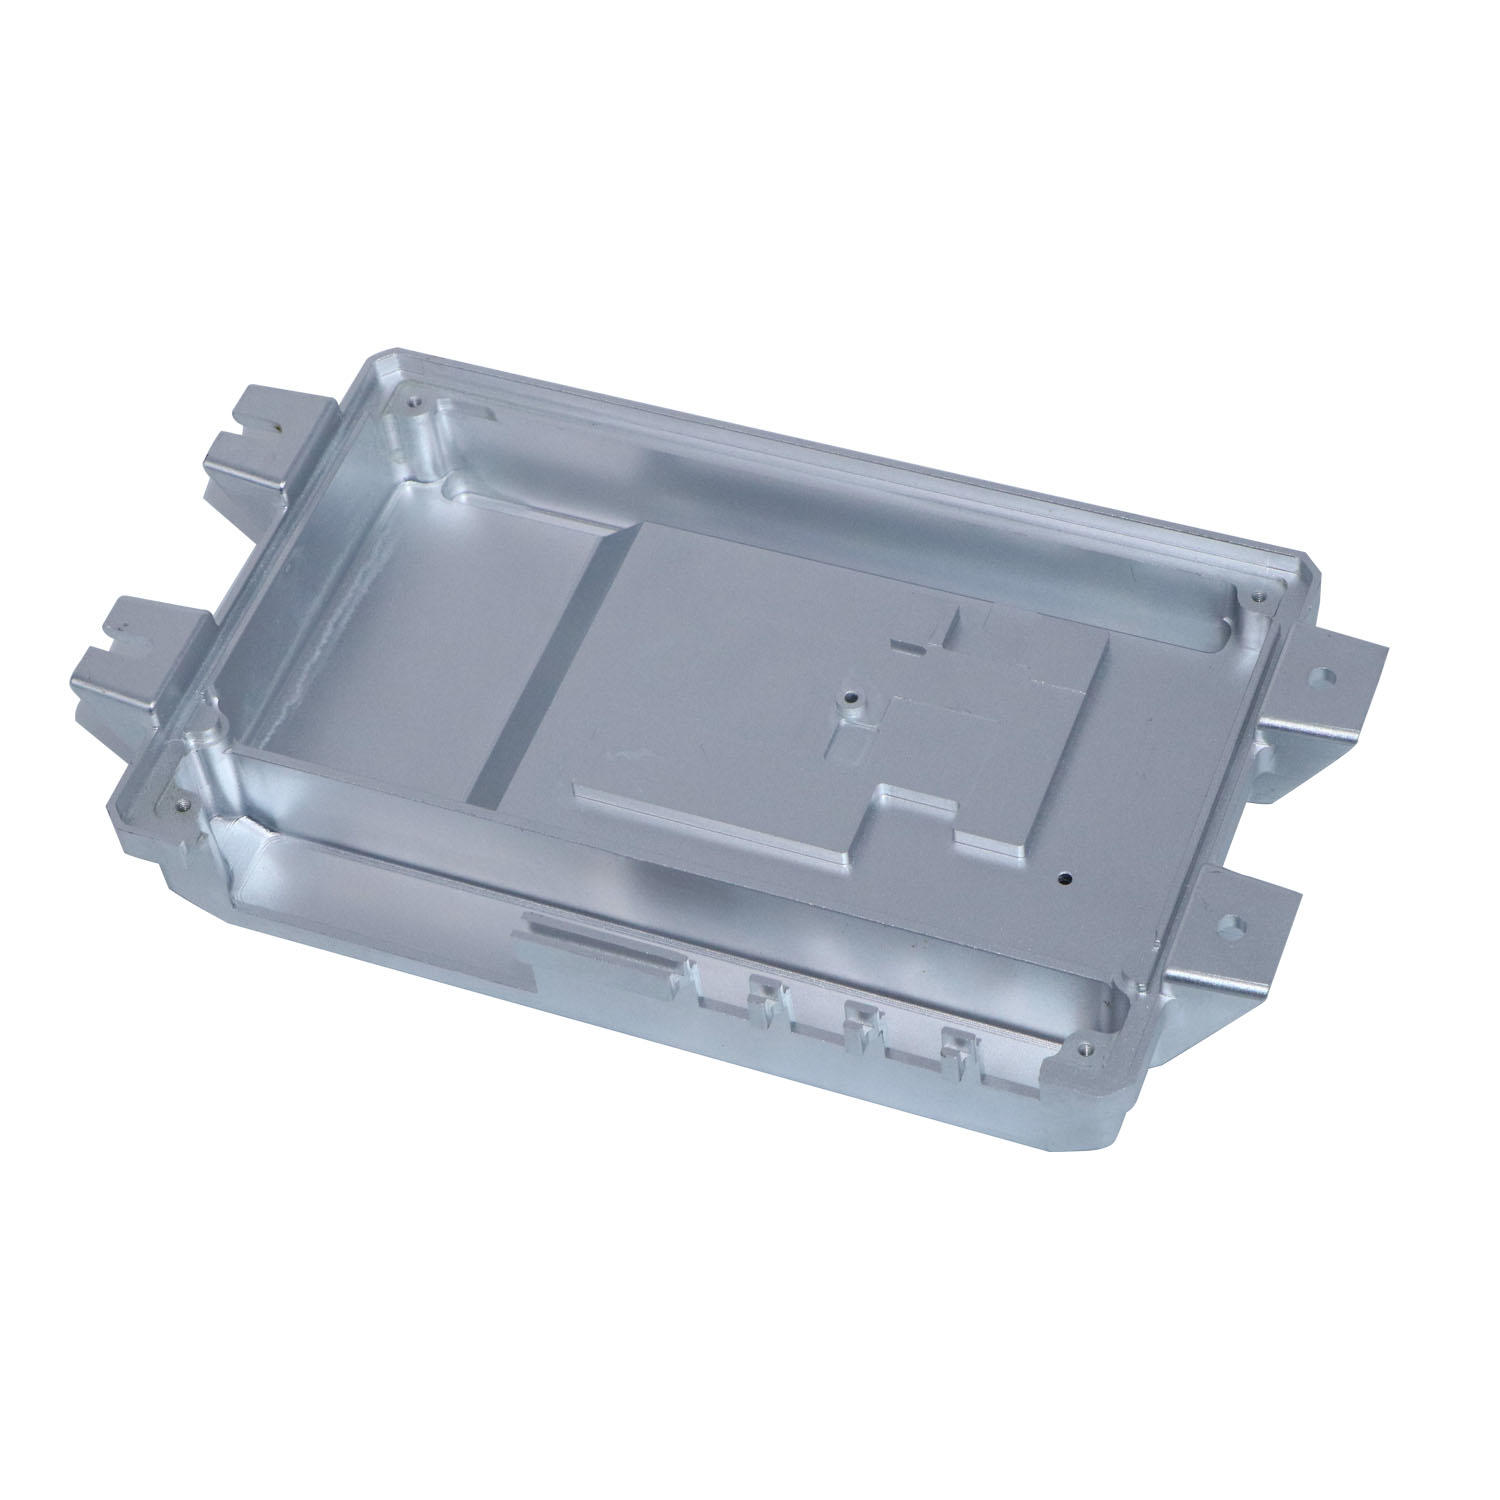 Xavier housing die casting components high-quality at discount-2